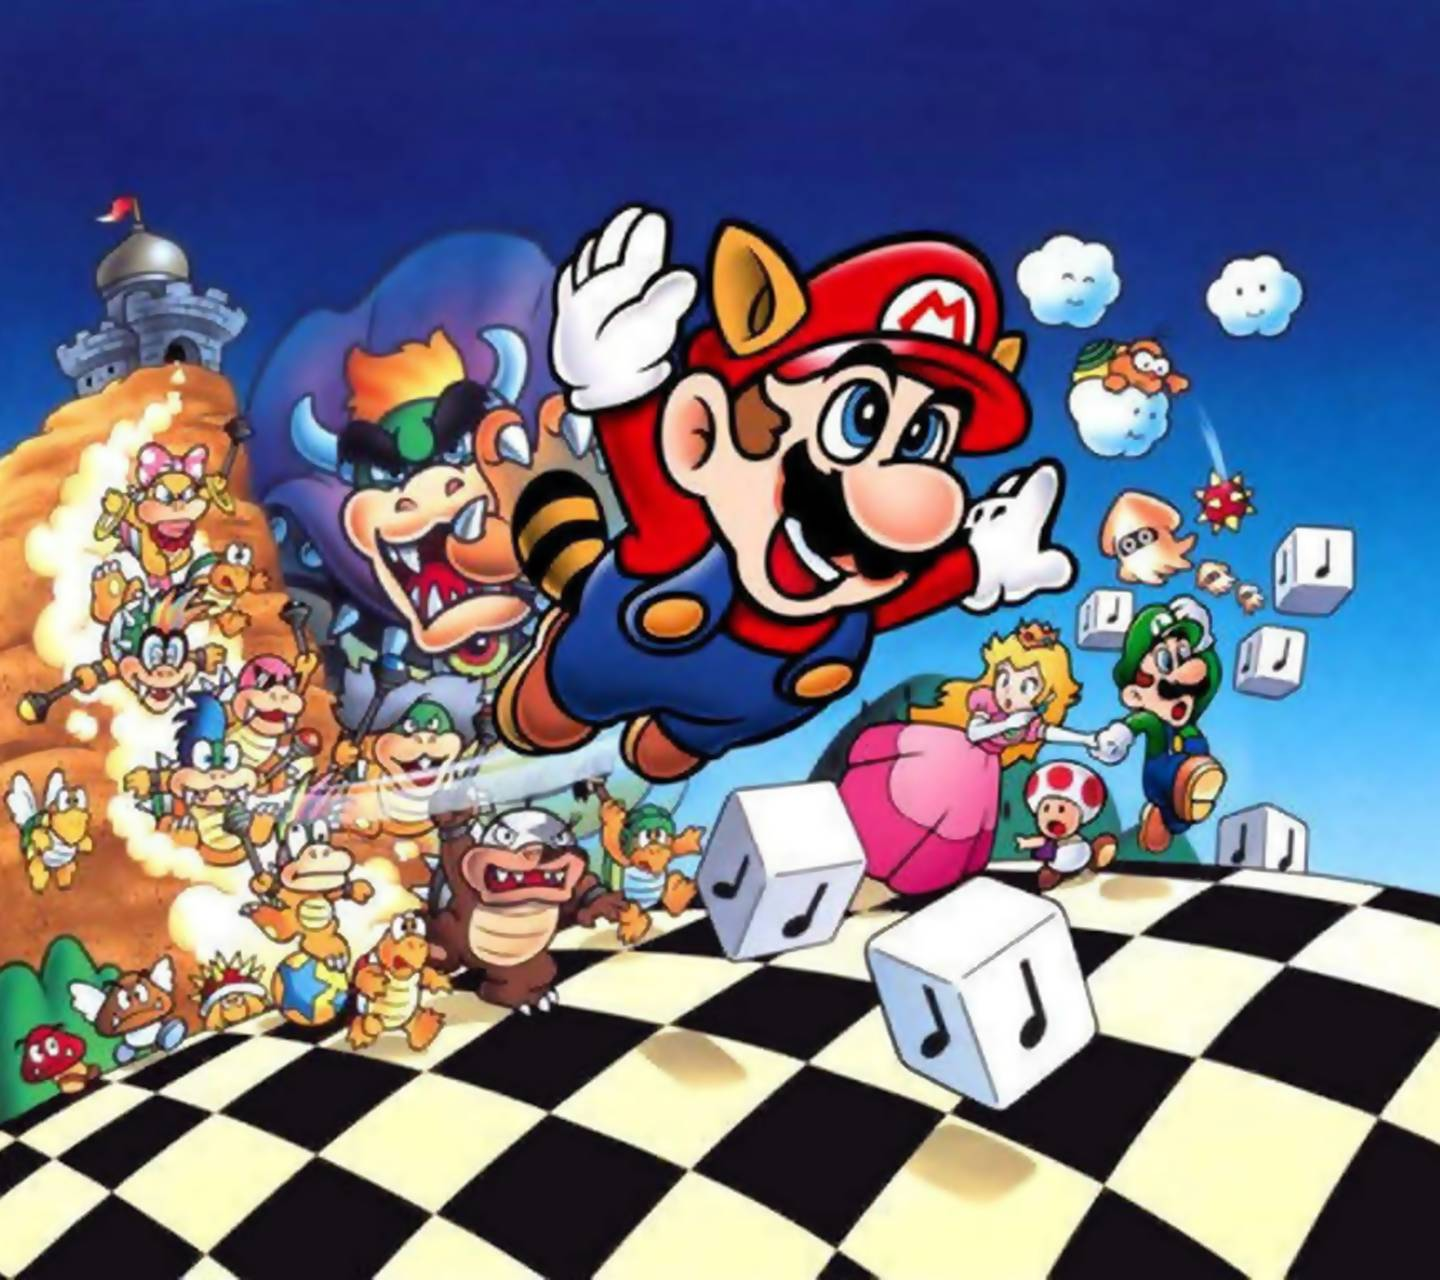 Download free luigi wallpapers for your mobile phone by super mario bros 3 altavistaventures Gallery